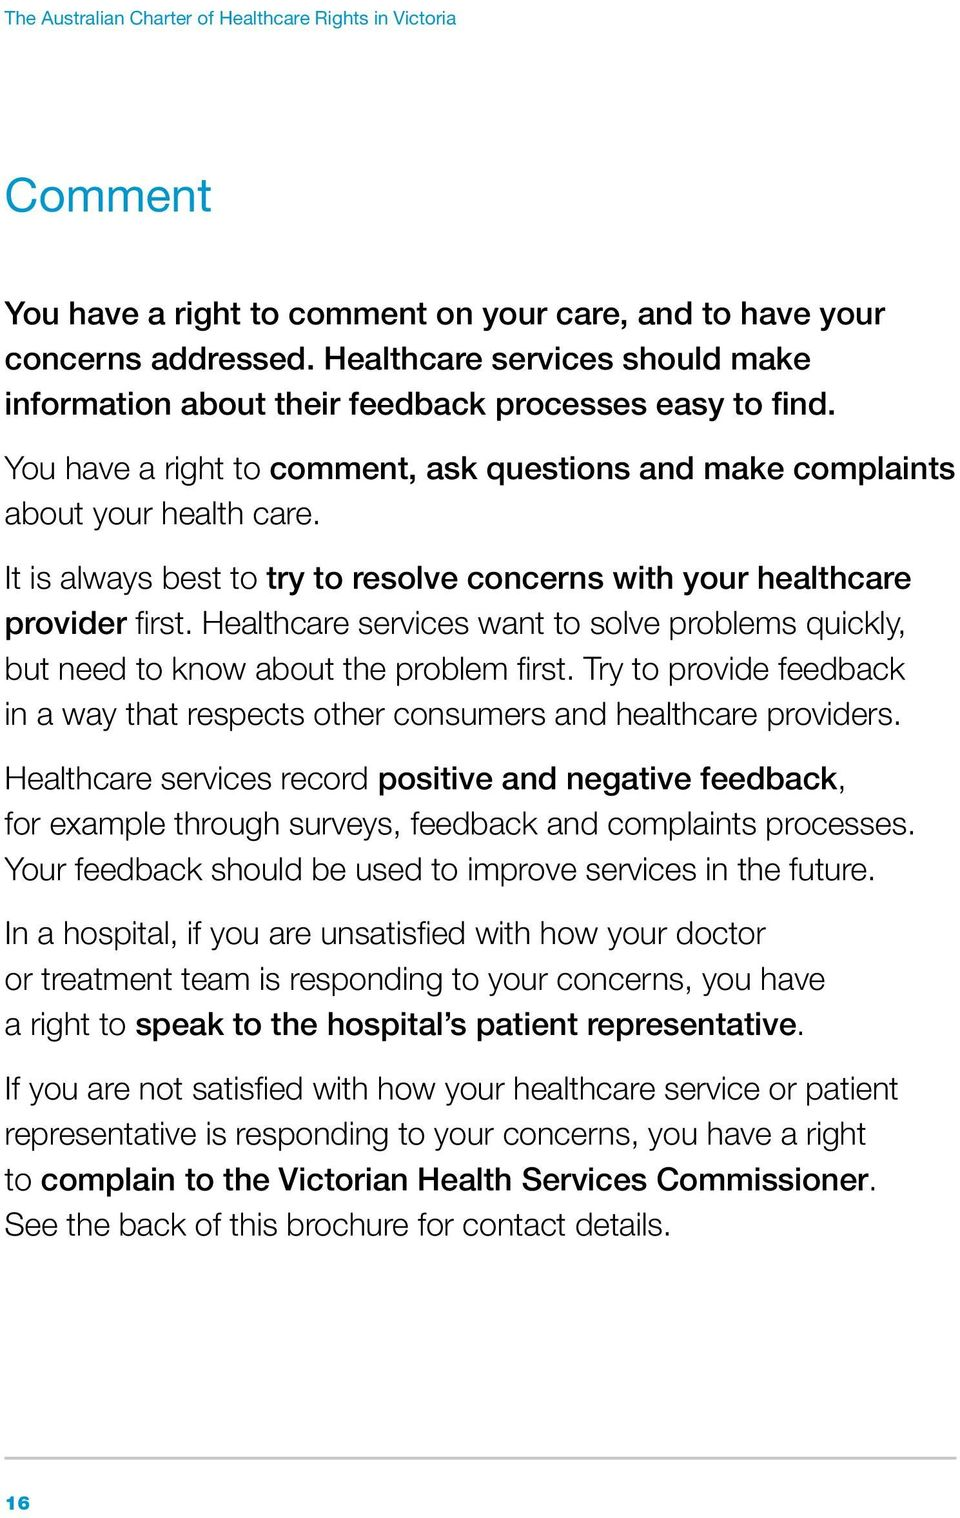 It is always best to try to resolve concerns with your healthcare provider first. Healthcare services want to solve problems quickly, but need to know about the problem first.